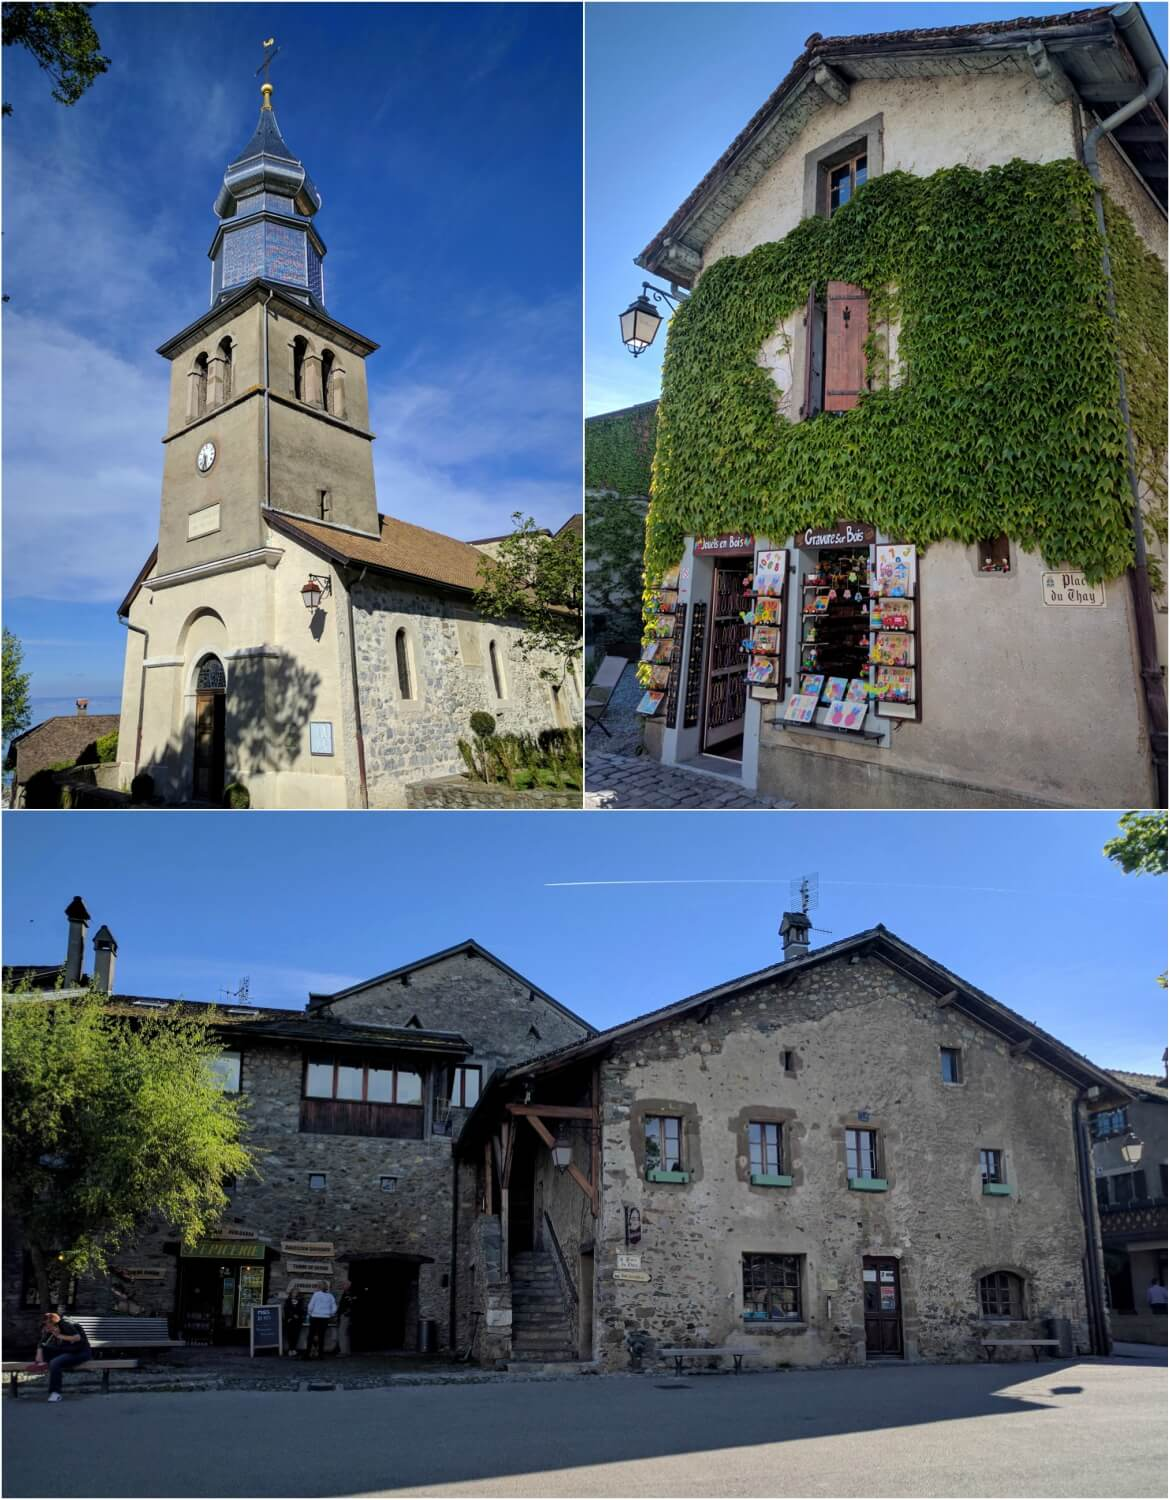 The village's church and other beautiful buildings